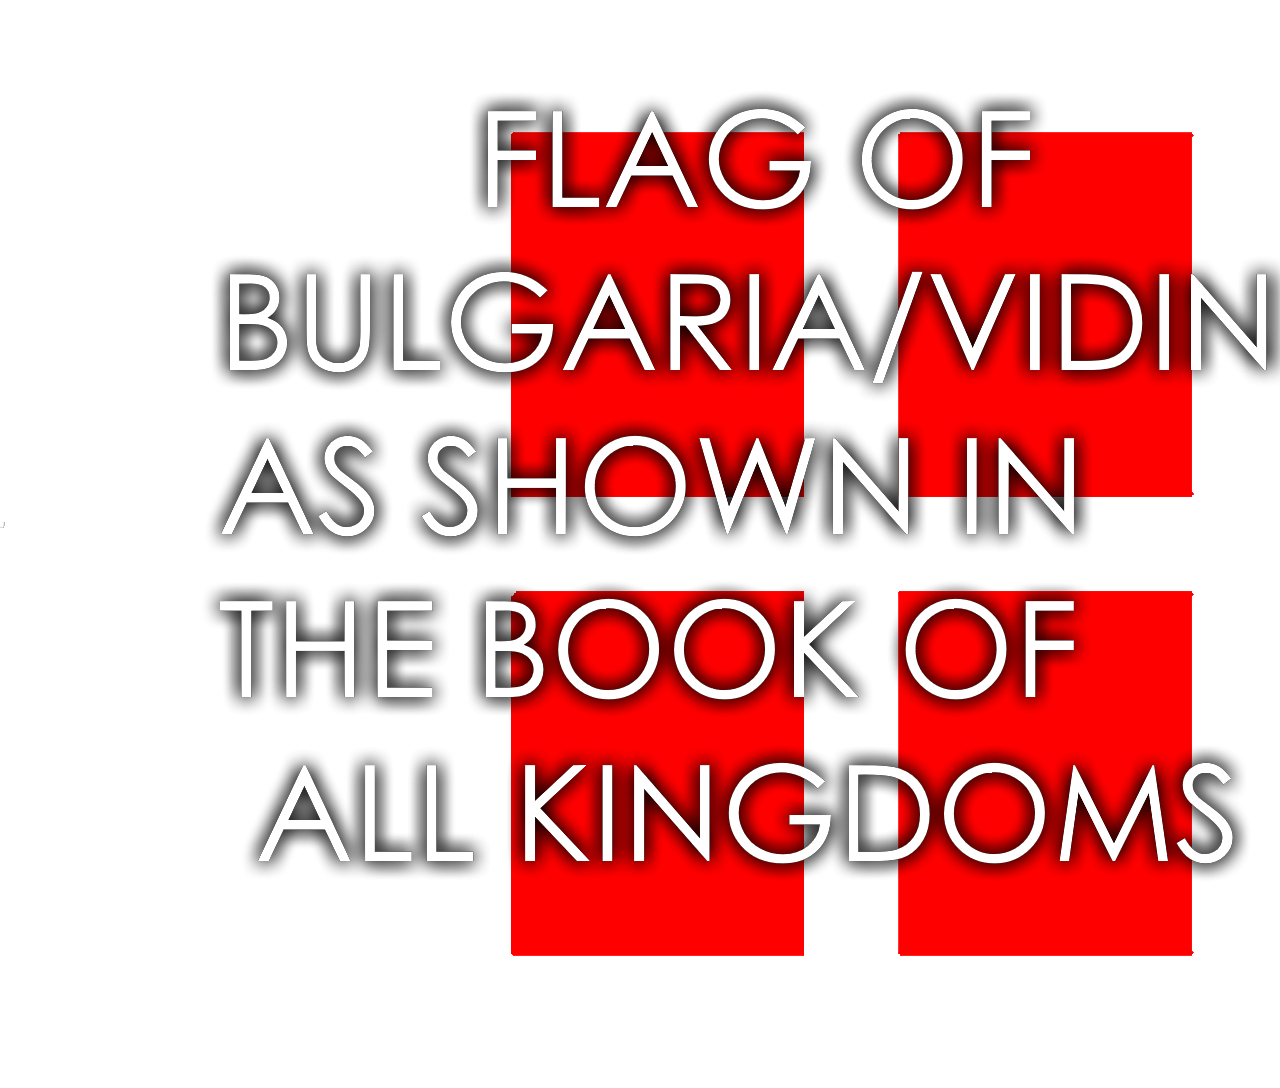 Bulgaria as Shown in the Book of all Kingdoms